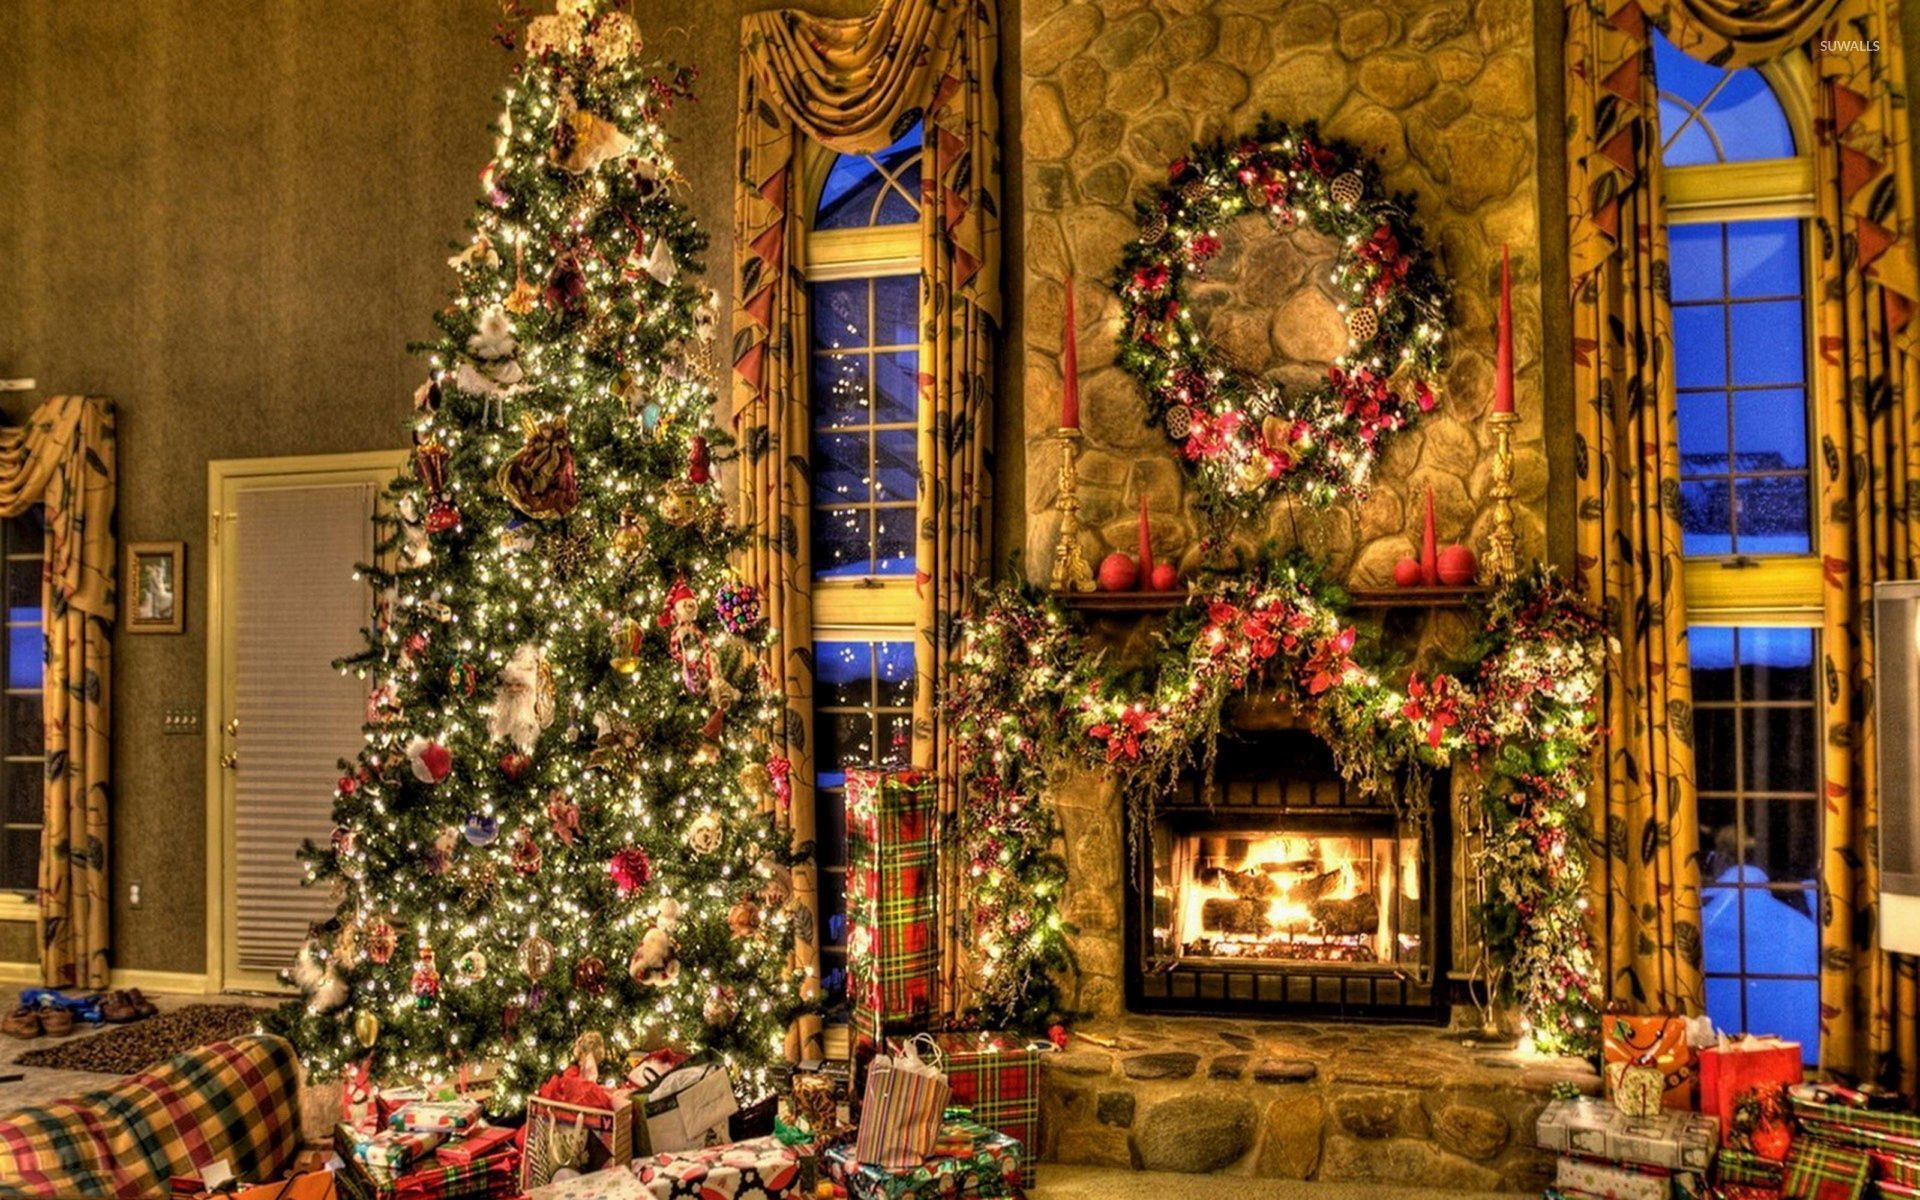 Christmas Tree By Fireplace  Christmas Fireplace Wallpaper ·① WallpaperTag